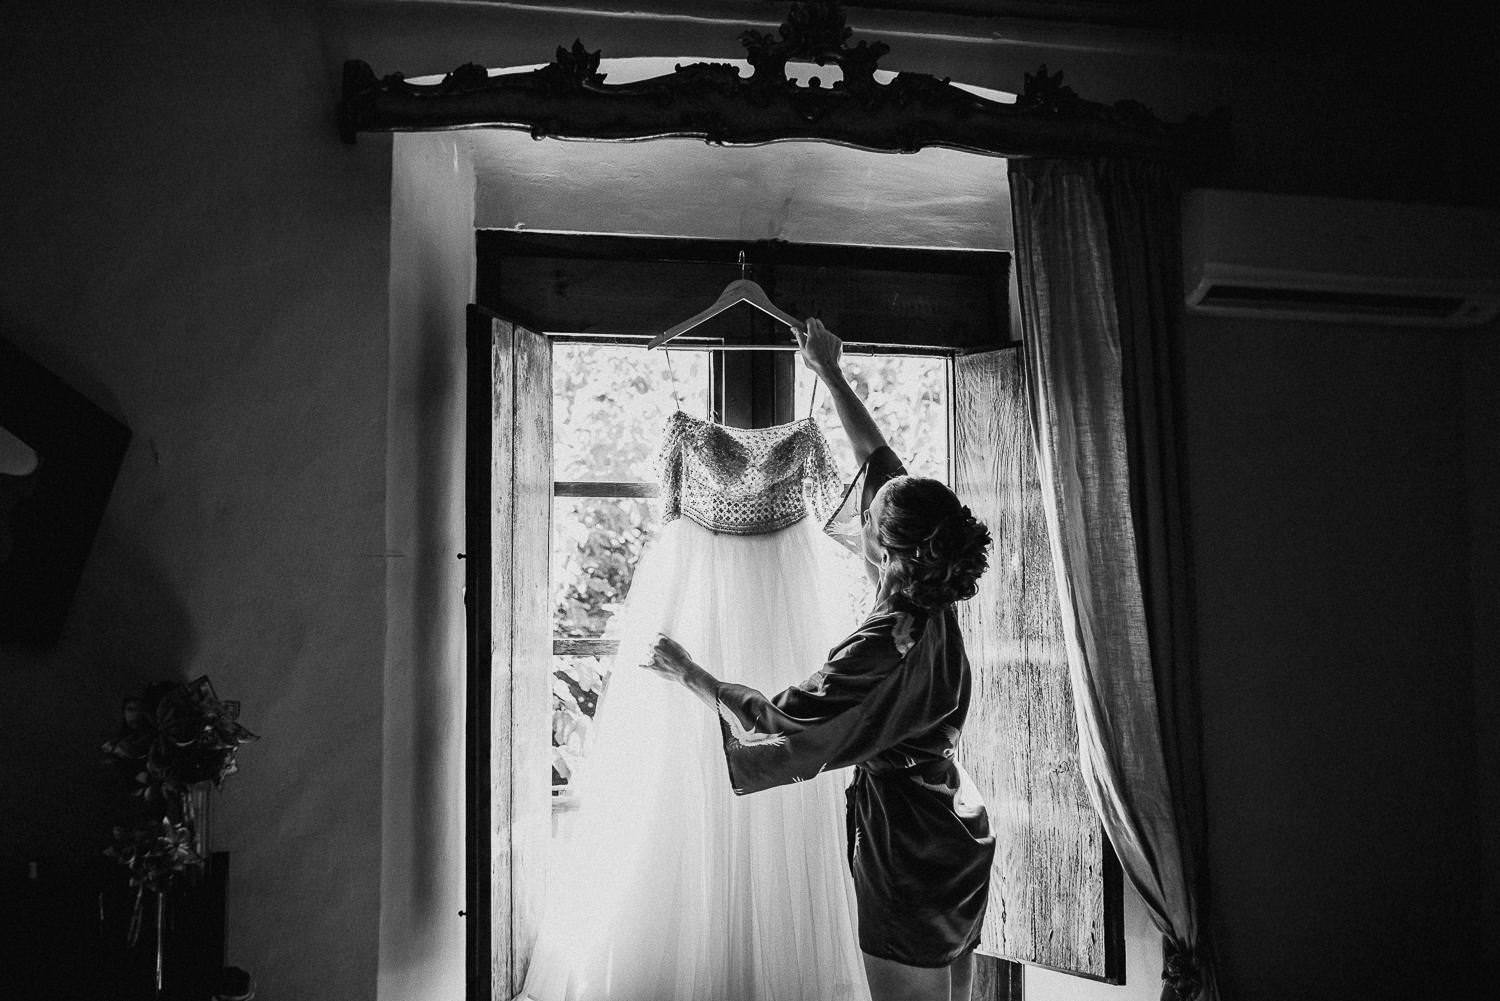 documentary wedding photographer sitges barcelona